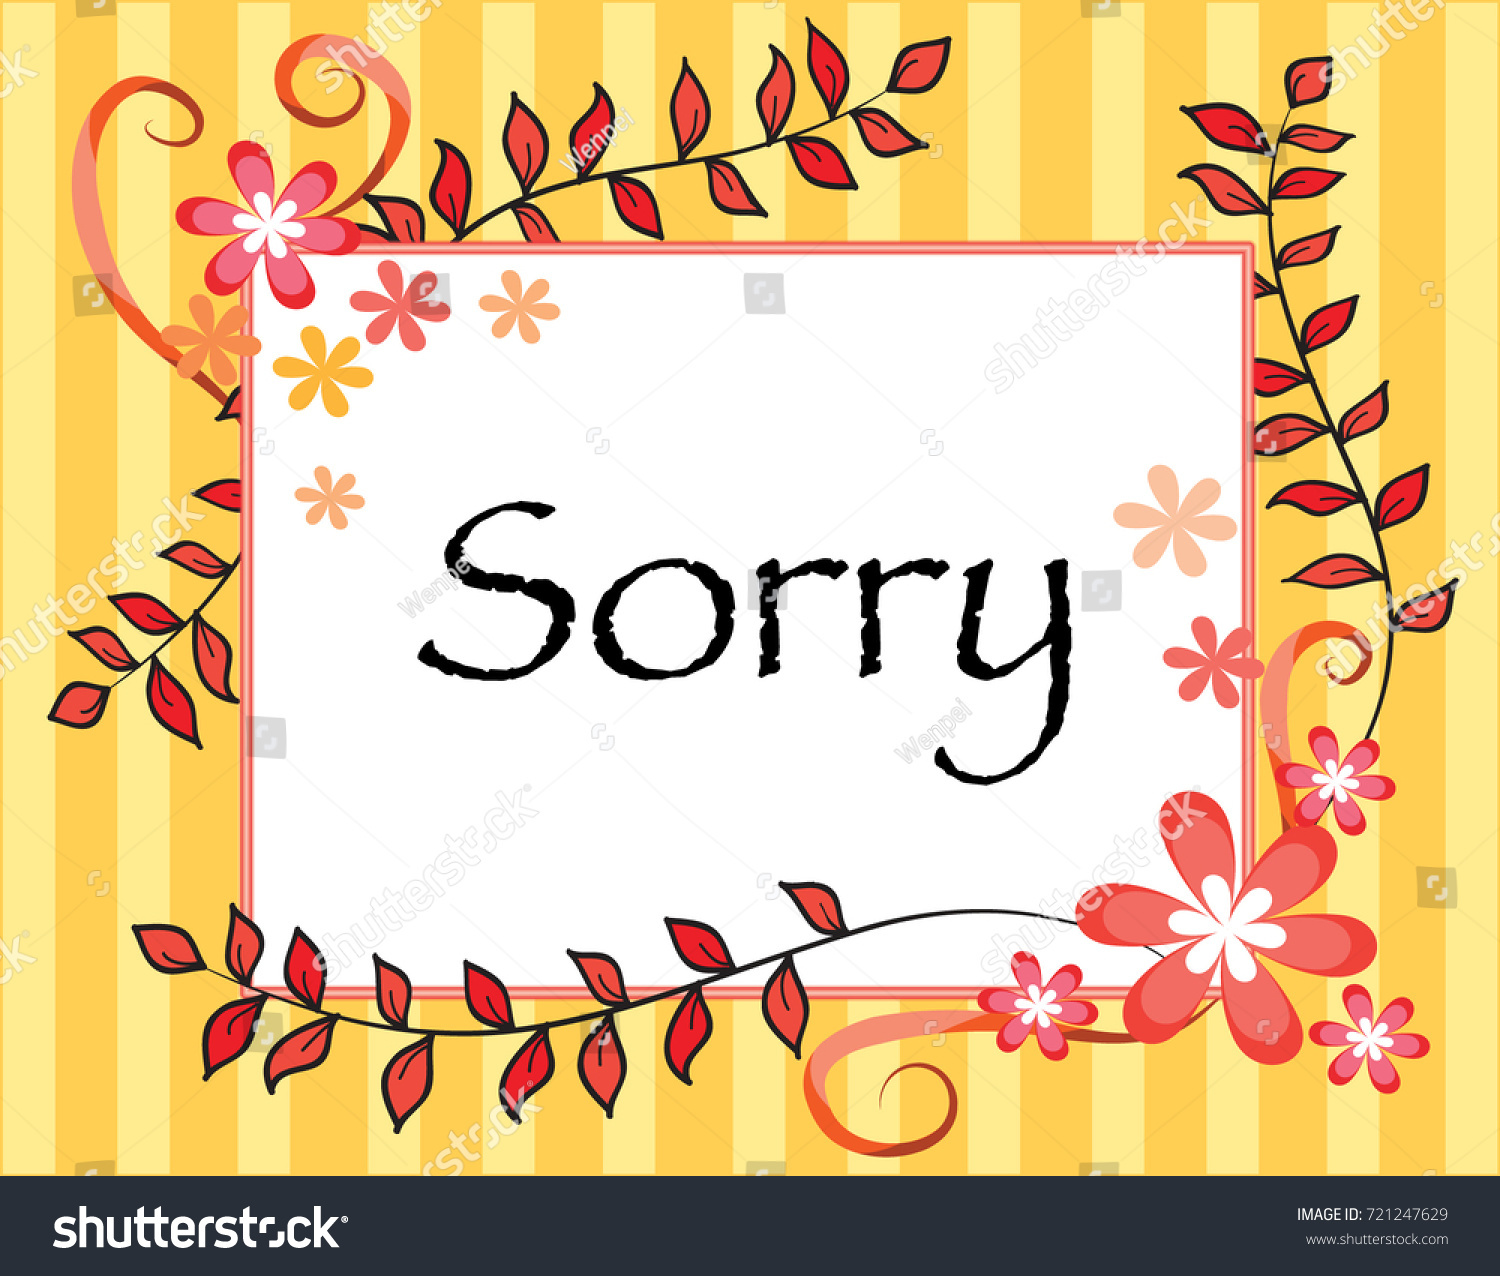 Apology card sorry stock vector 721247629 shutterstock apology card sorry kristyandbryce Gallery